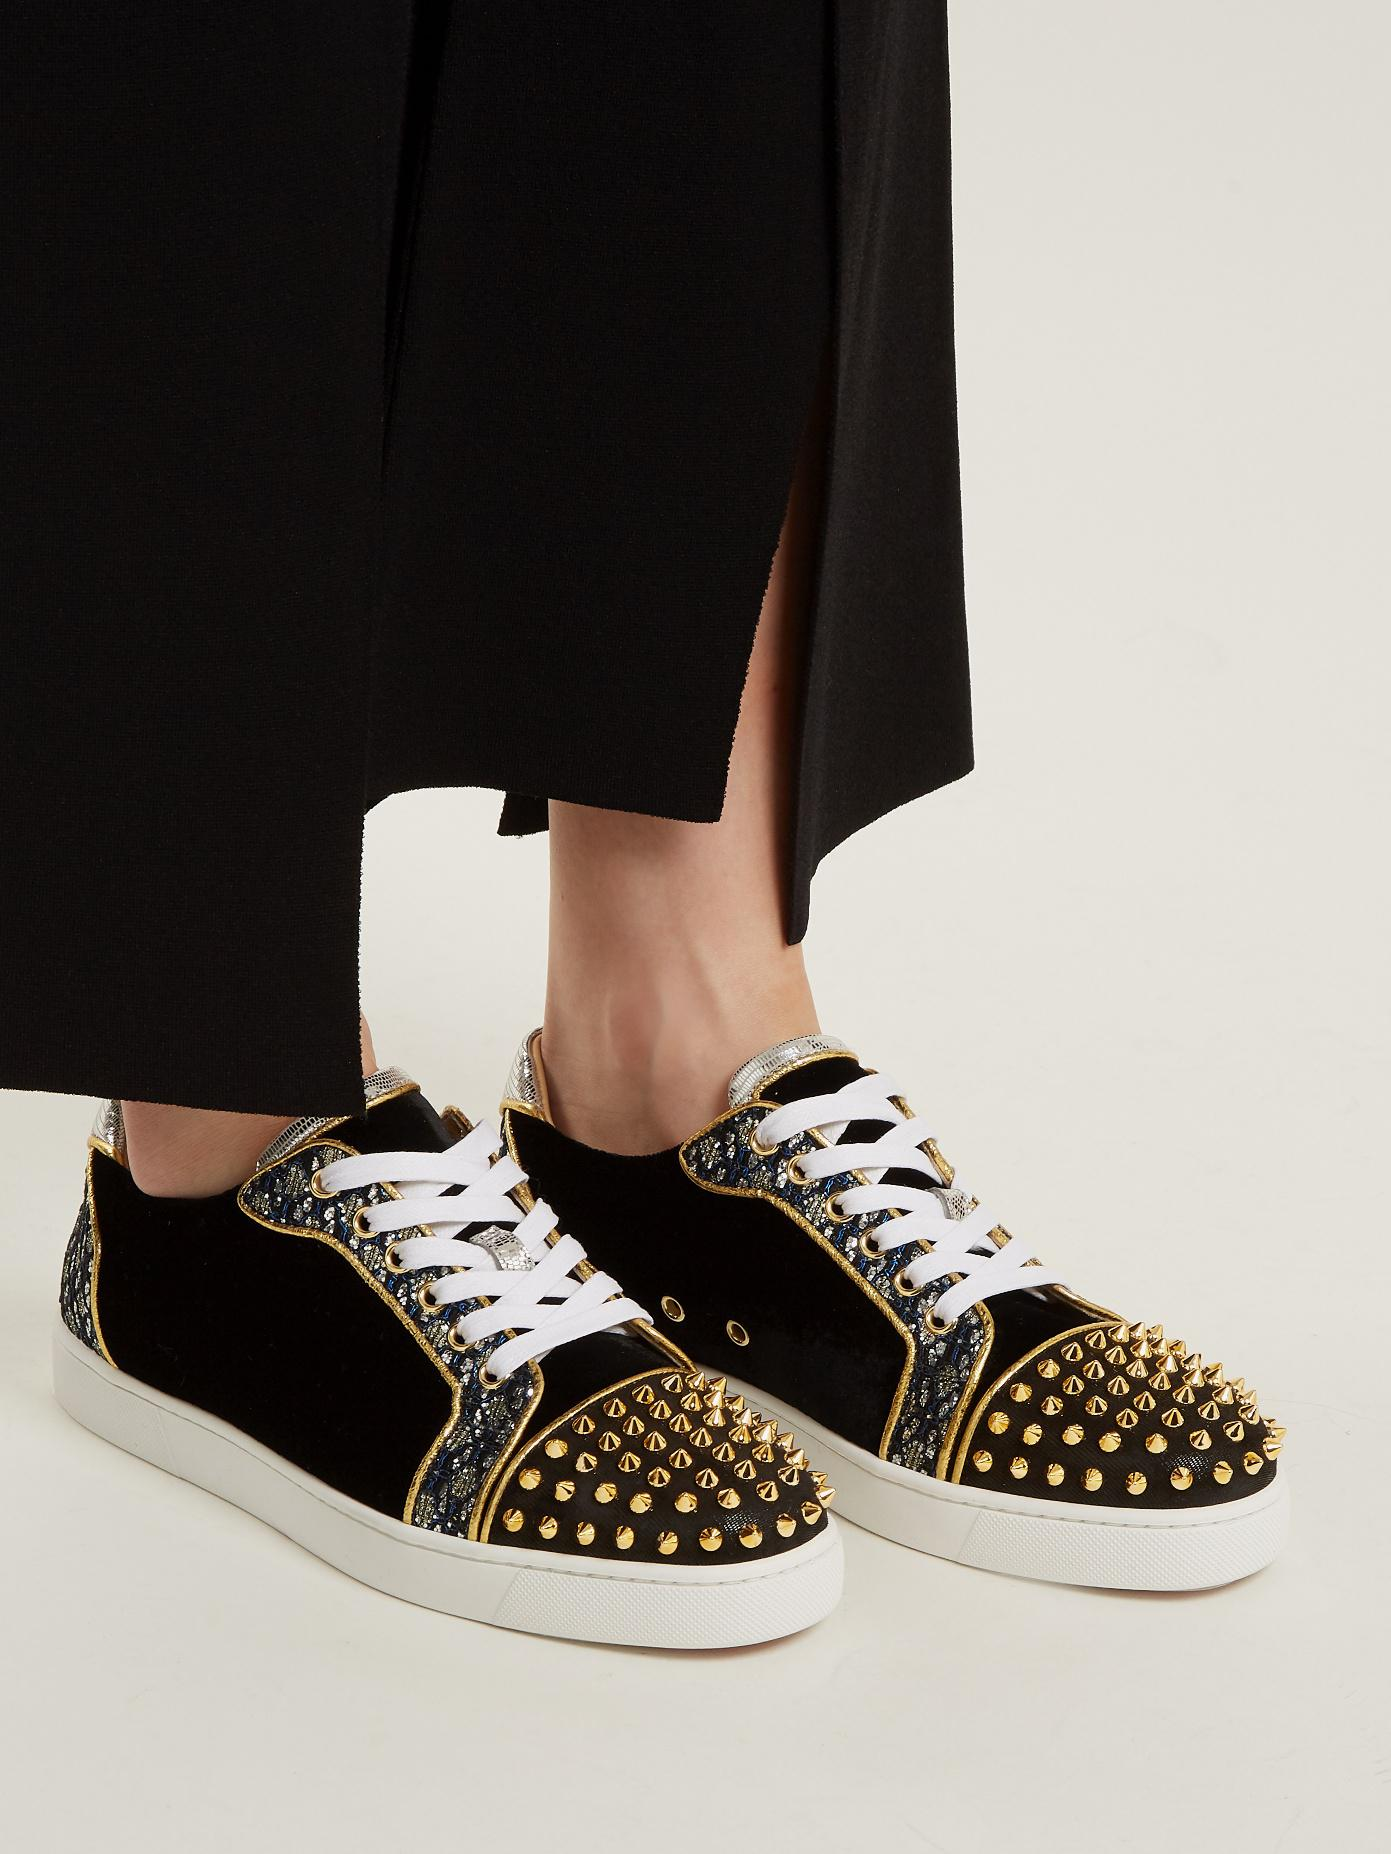 4e418773eb75 Gallery. Previously sold at  MATCHESFASHION.COM · Women s Christian  Louboutin Spike